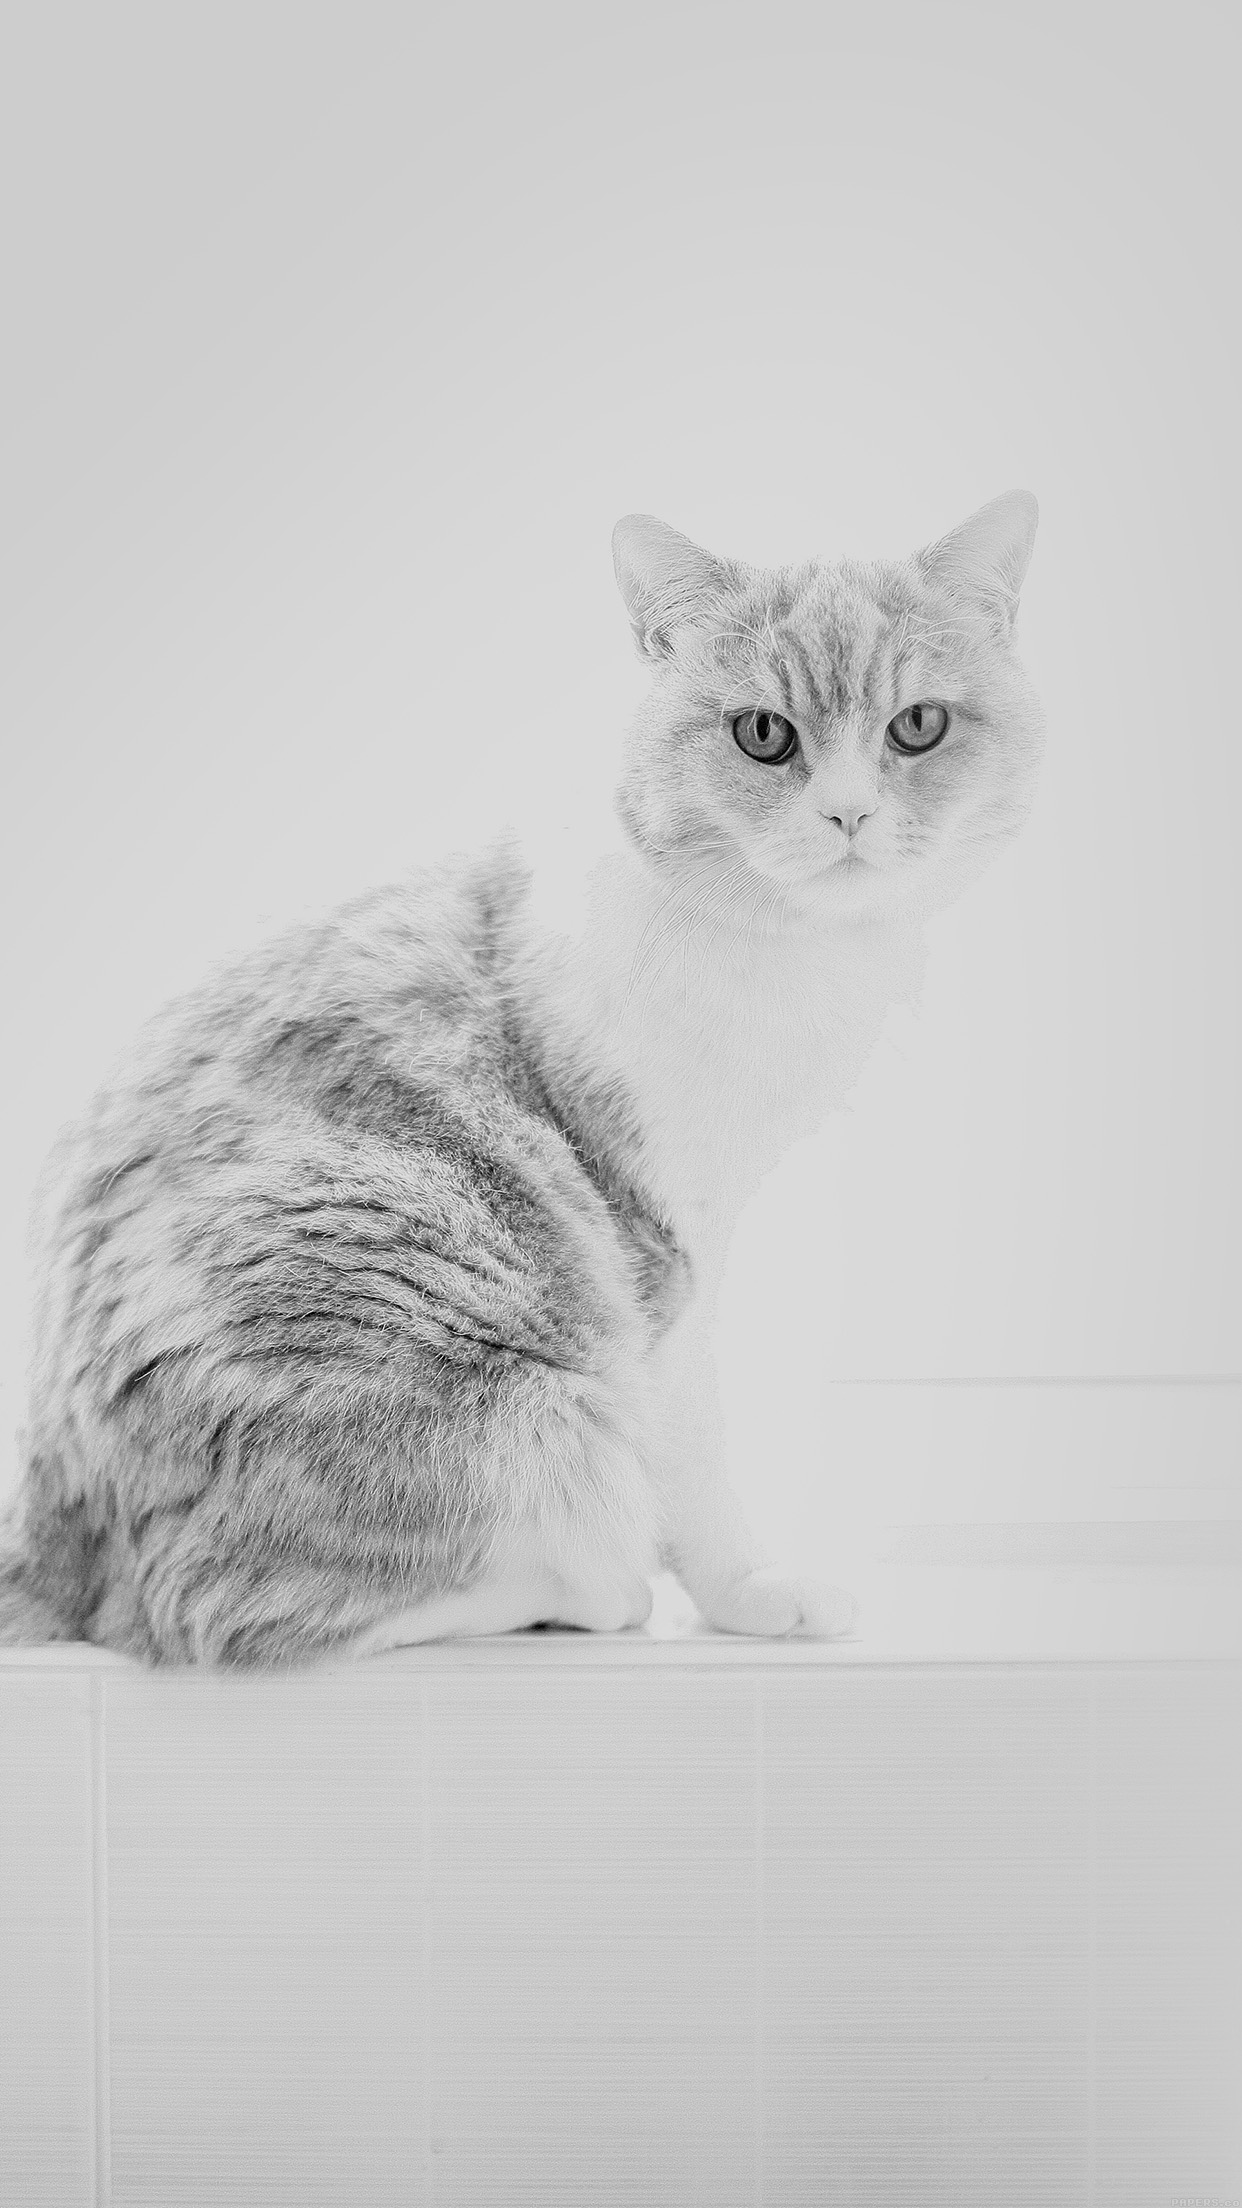 papers.co mj86 cute cat white animal nature 34 iphone6 plus wallpaper